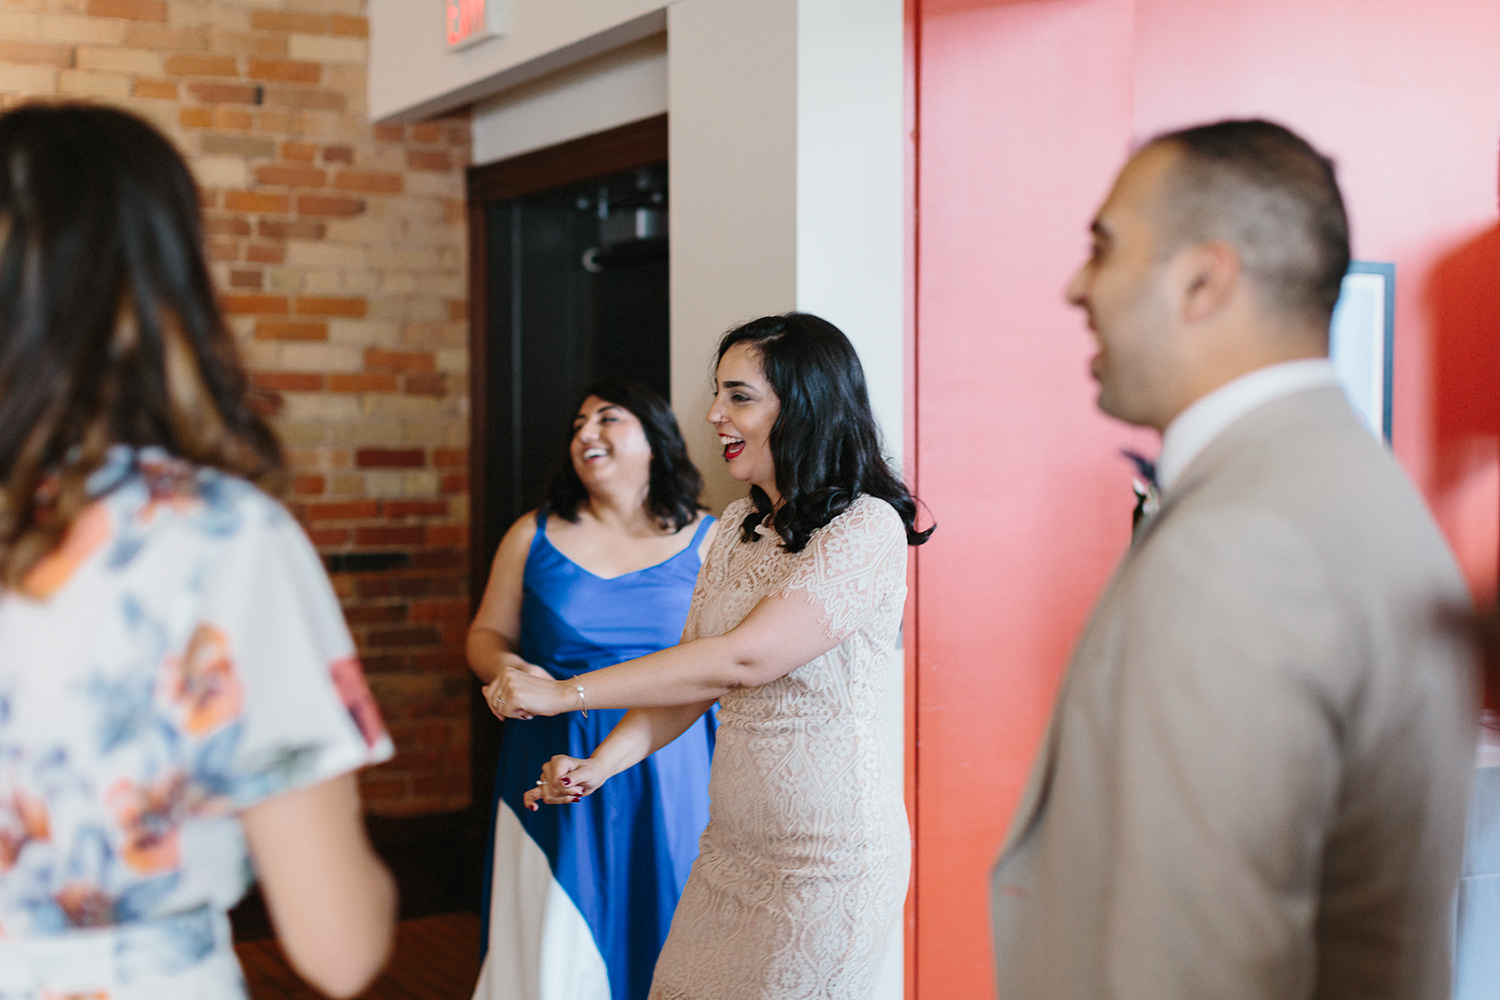 Best-Wedding-Photographers-in-Toronto-Downtown-Urban-Gladstone-Hotel-Venue-Inspiration-Top-Venues-in-Toronto-boutique-hotel-candid-documentary-brunch-wedding-reception-bride-dancing.jpg